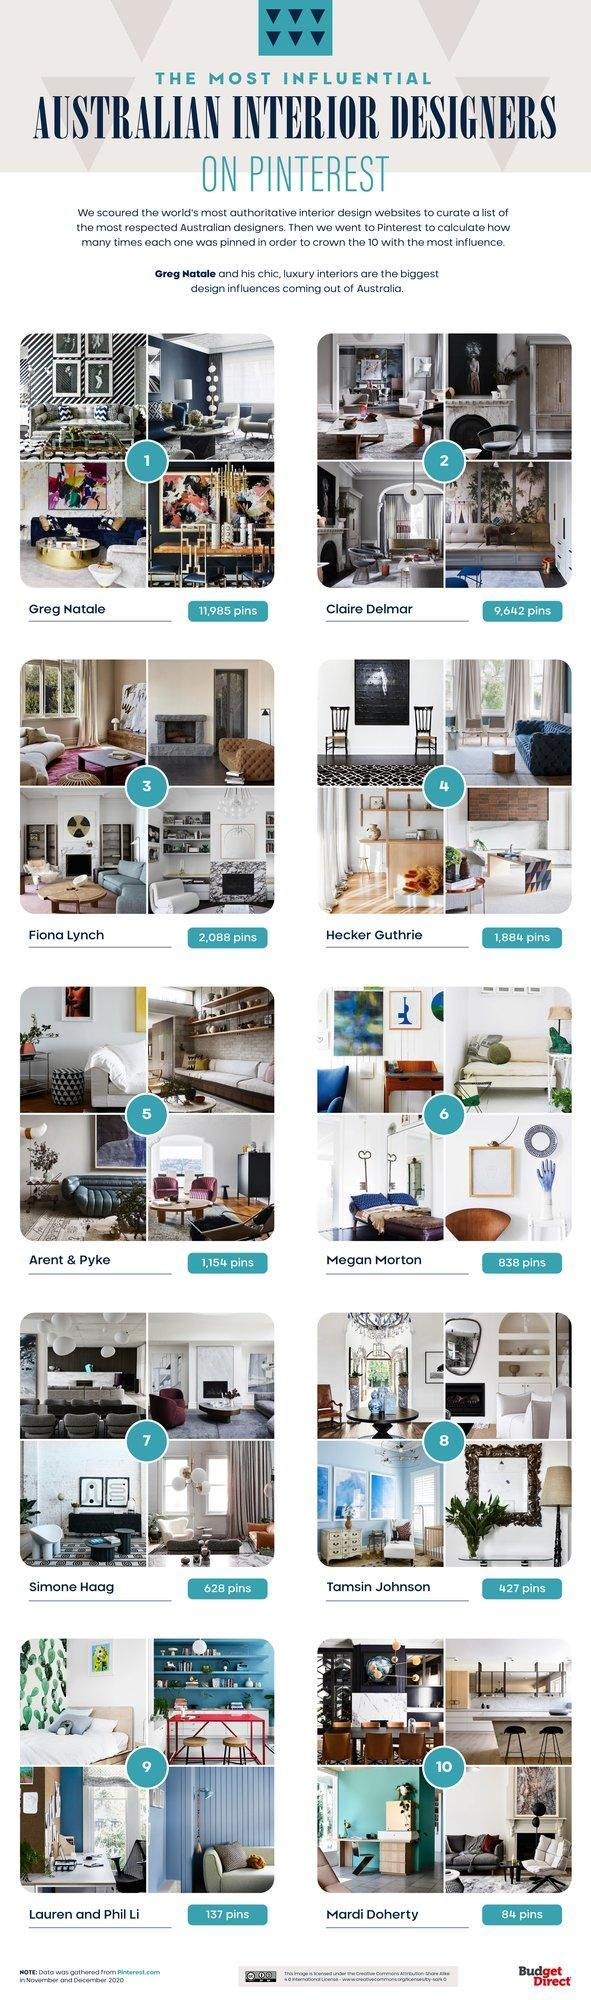 Budget Direct Home Insurance's Most Influential Australian Interior Designers on Pinterest